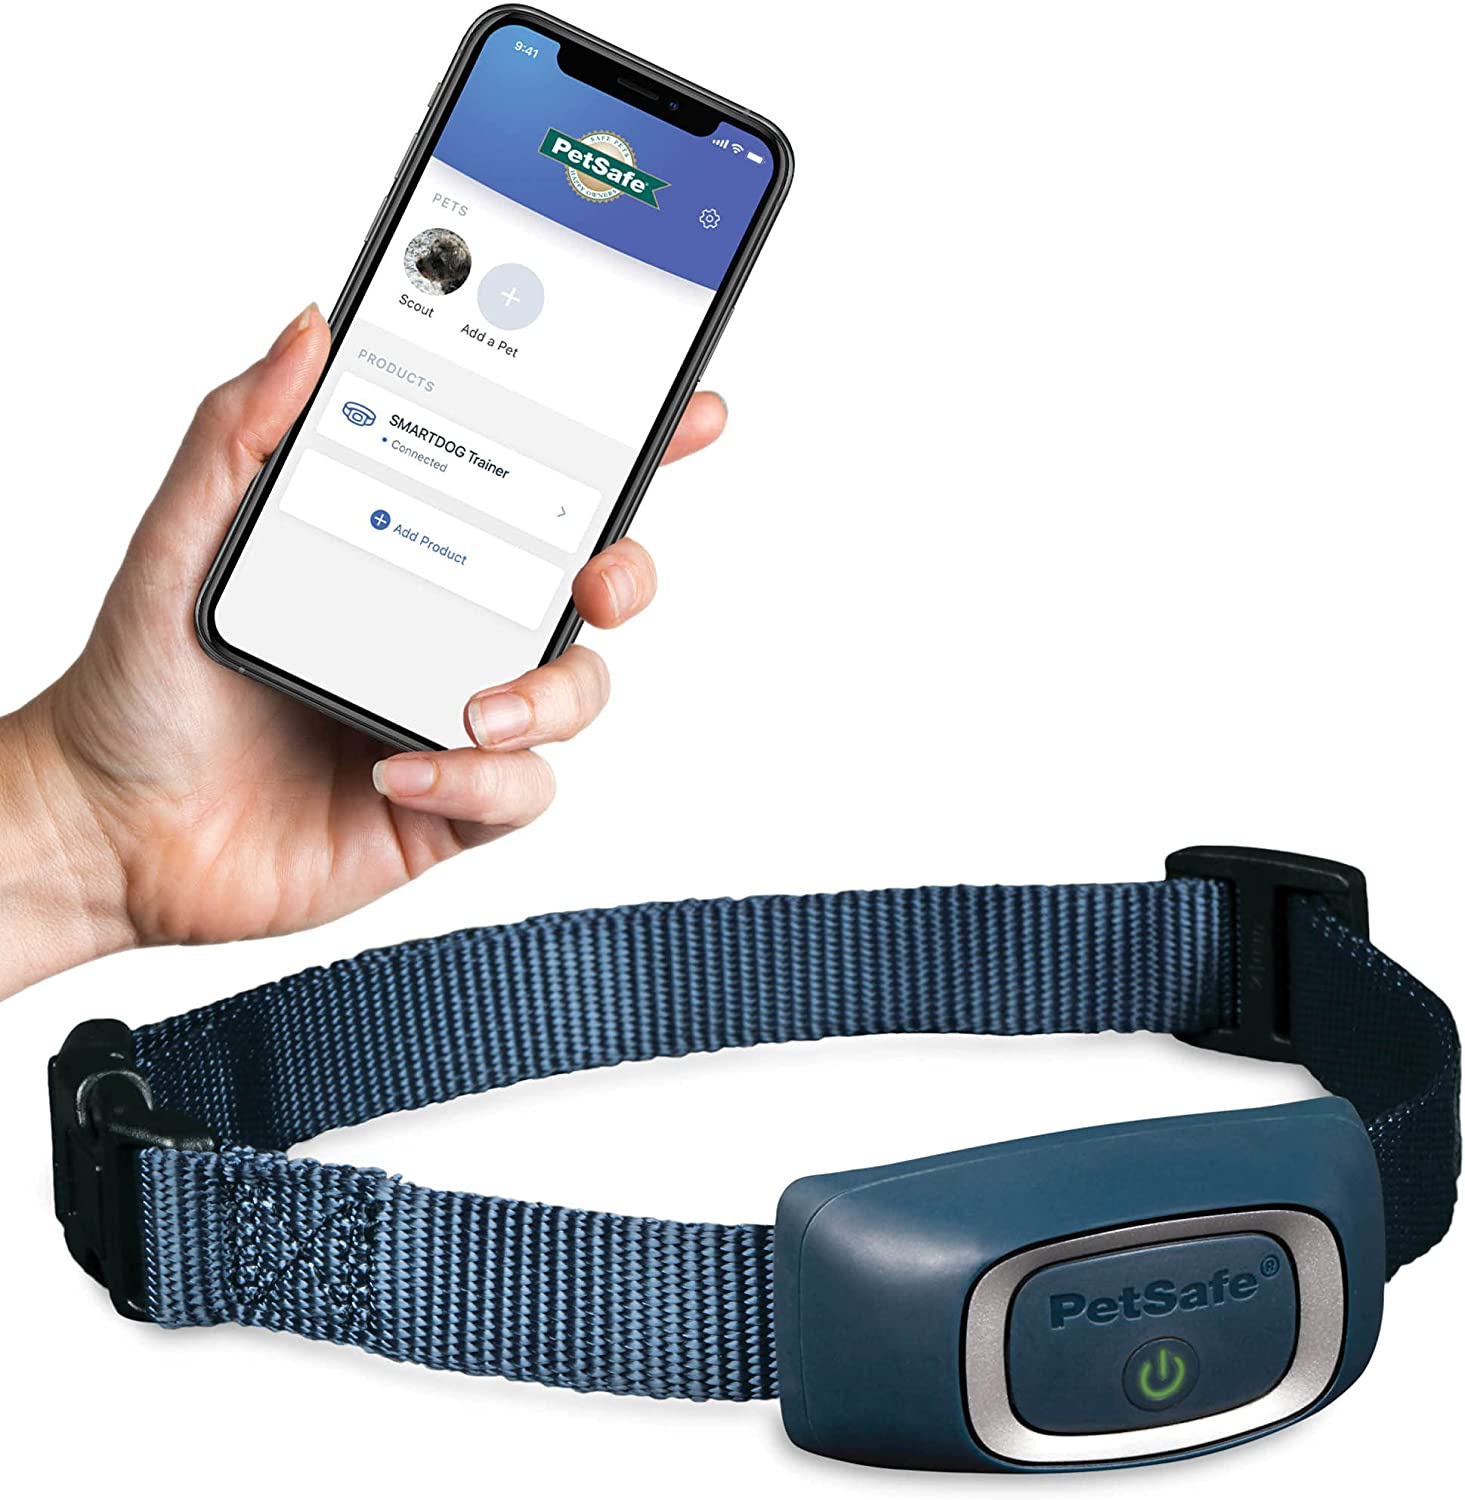 PetSafe SMART DOG Training Collar – Uses Smartphone as Handheld Remote Control – Tone, Vibration, 1-15 Levels of Static Stimulation – Bluetooth Wireless System – All in One Pet Training Solution